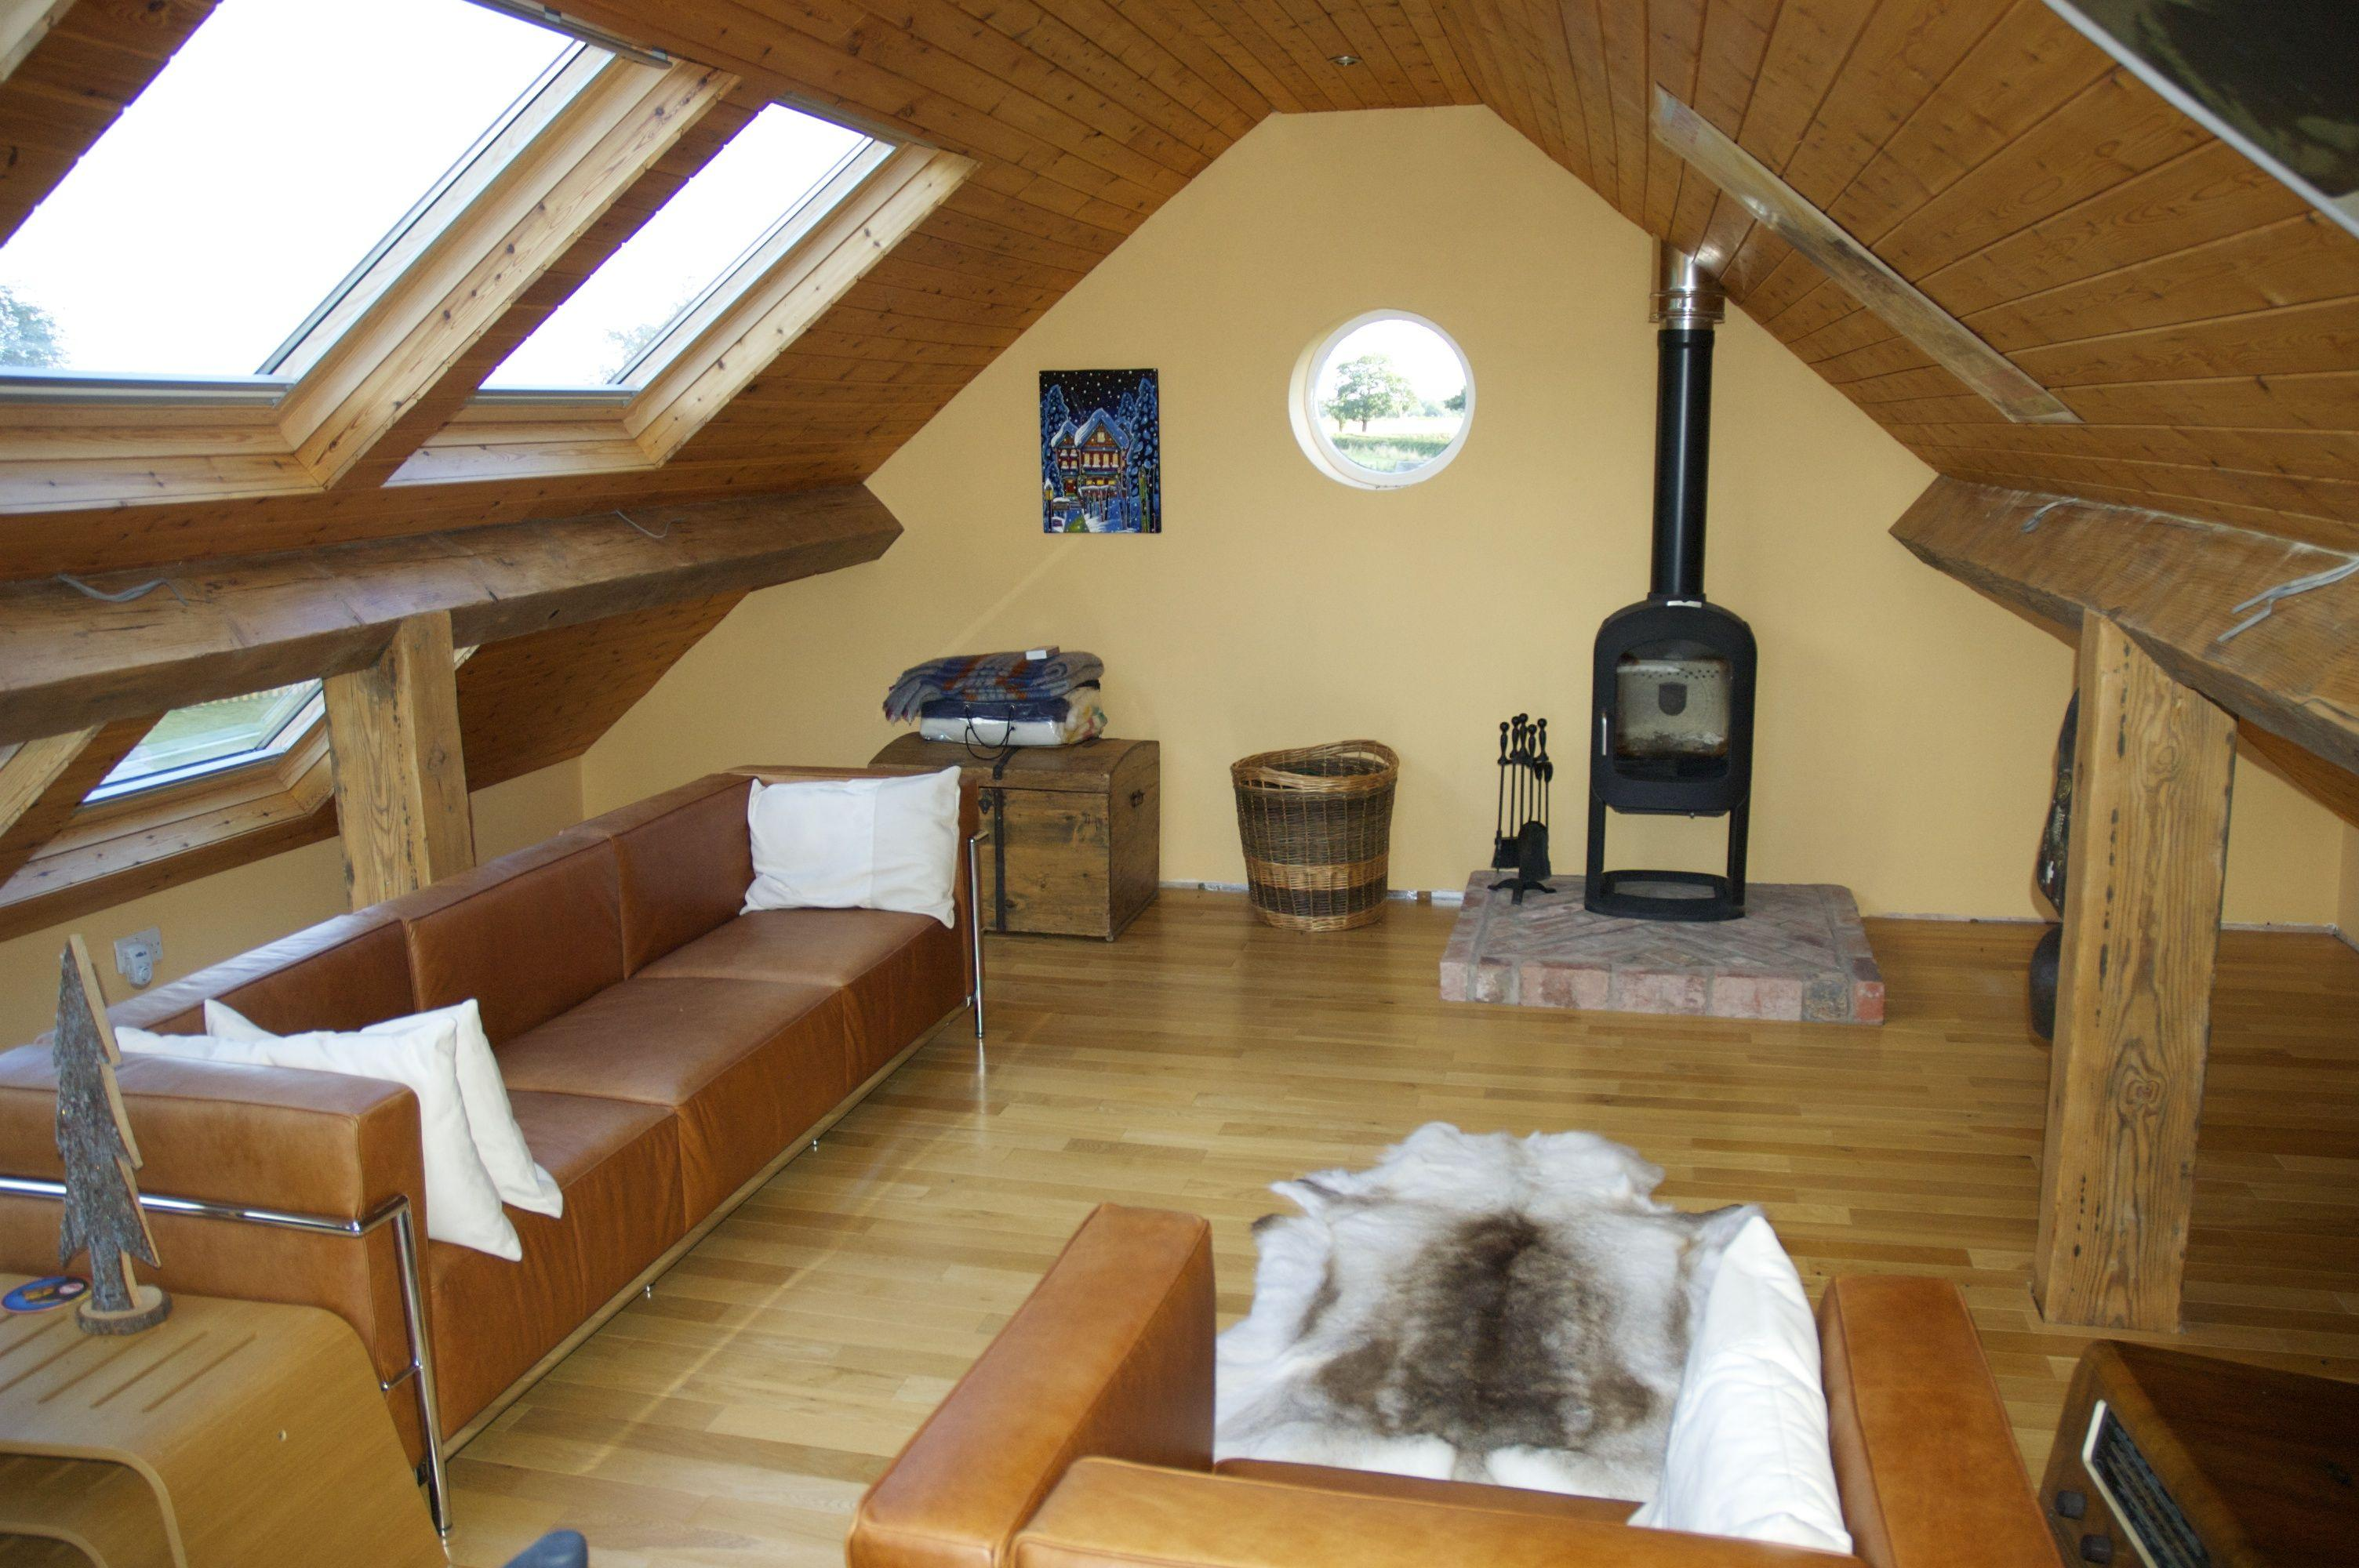 The secrets of loft conversion you never know